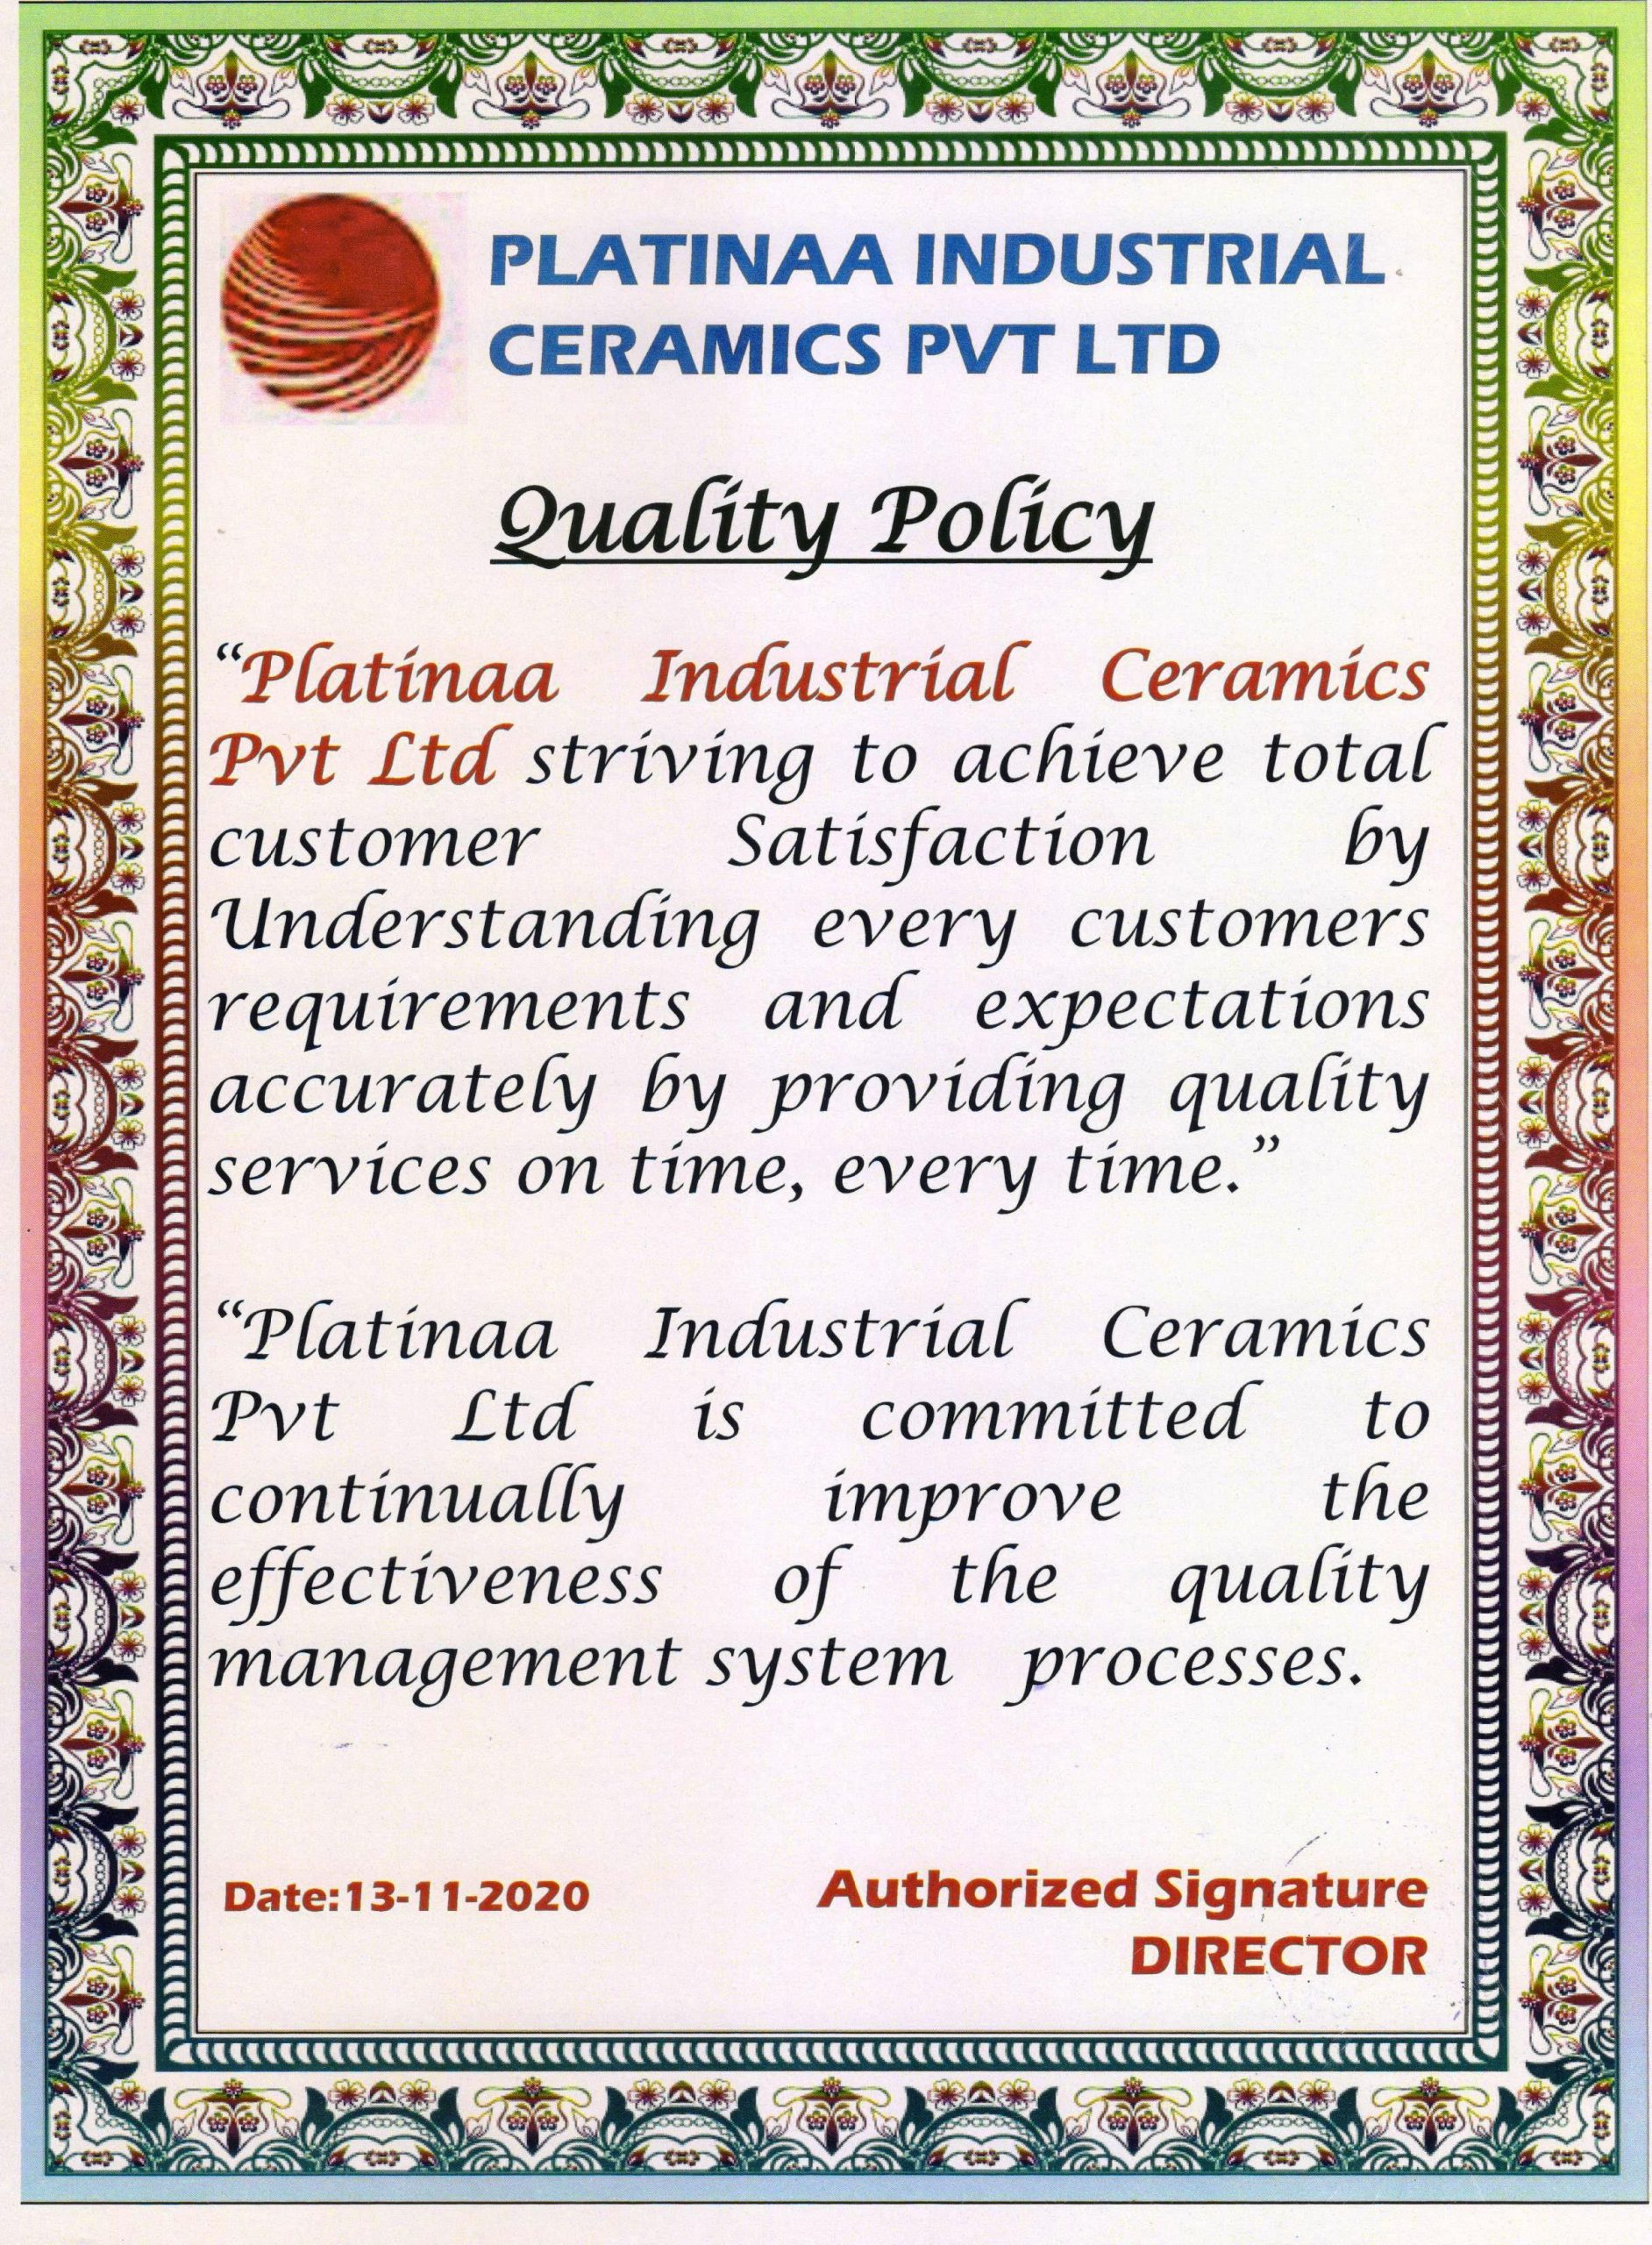 ISO 9001 QUALITY POLICY 001